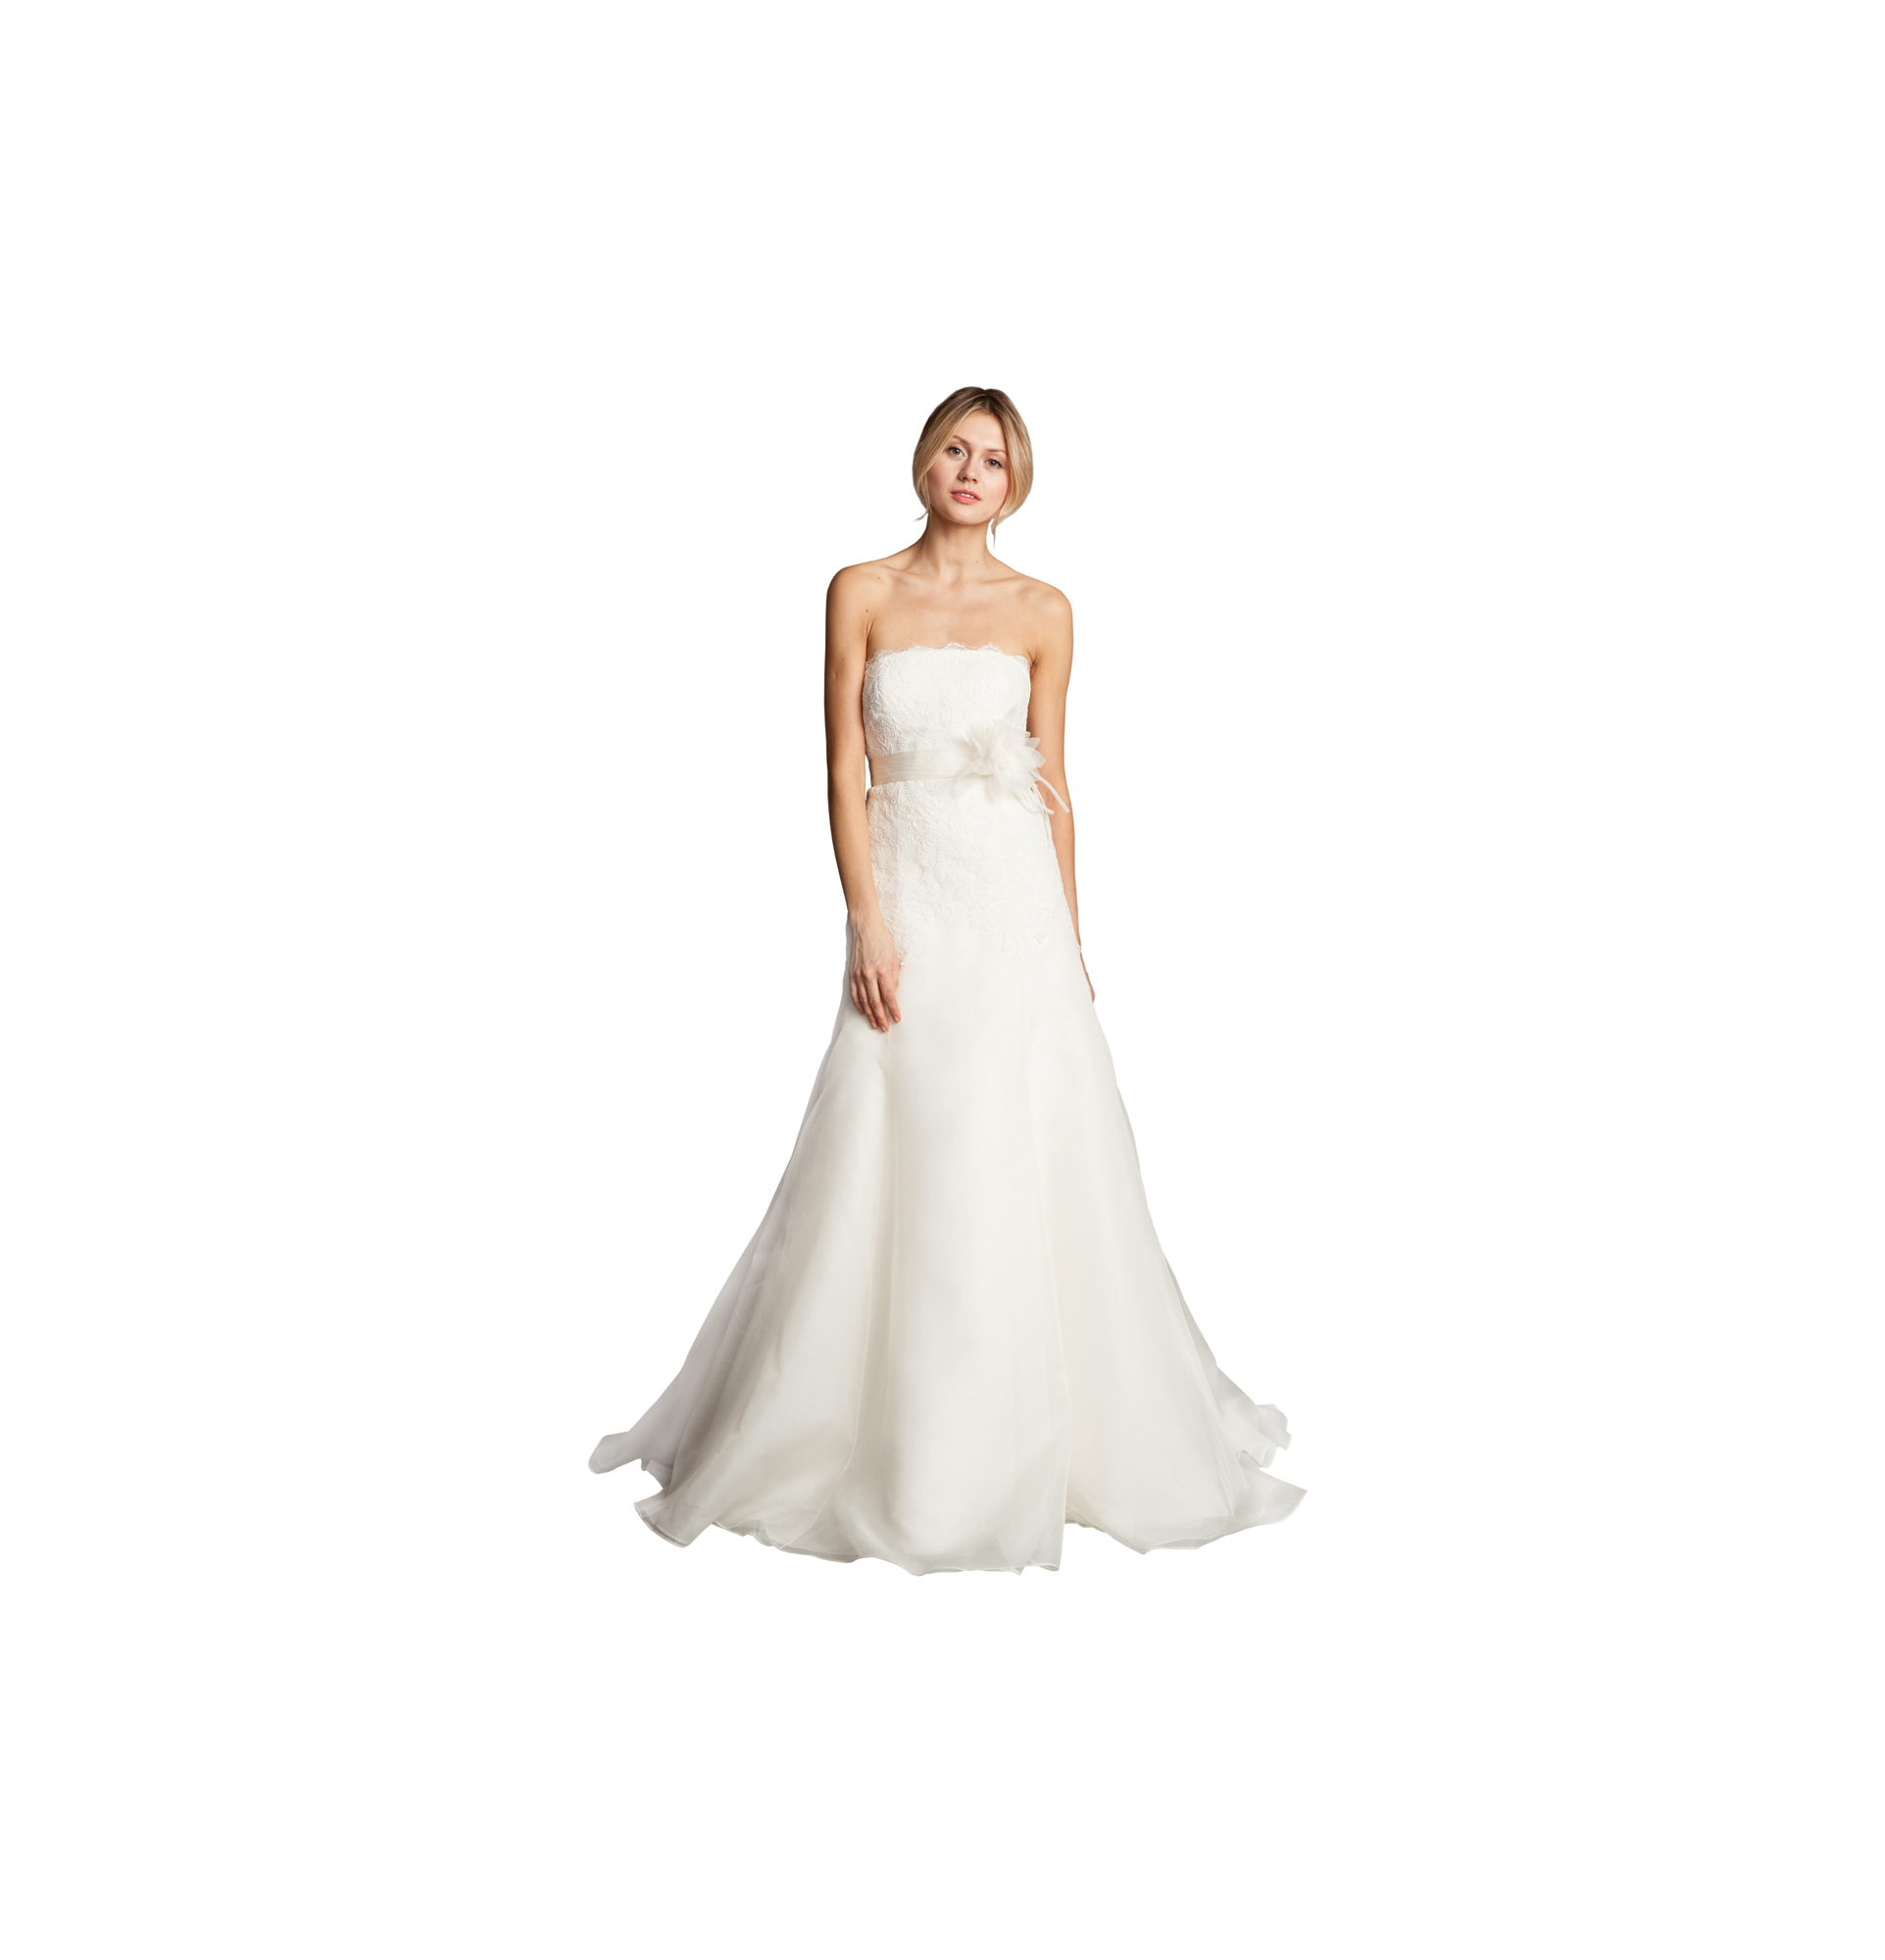 Wedding dresses gowns real simple for Real simple wedding dresses